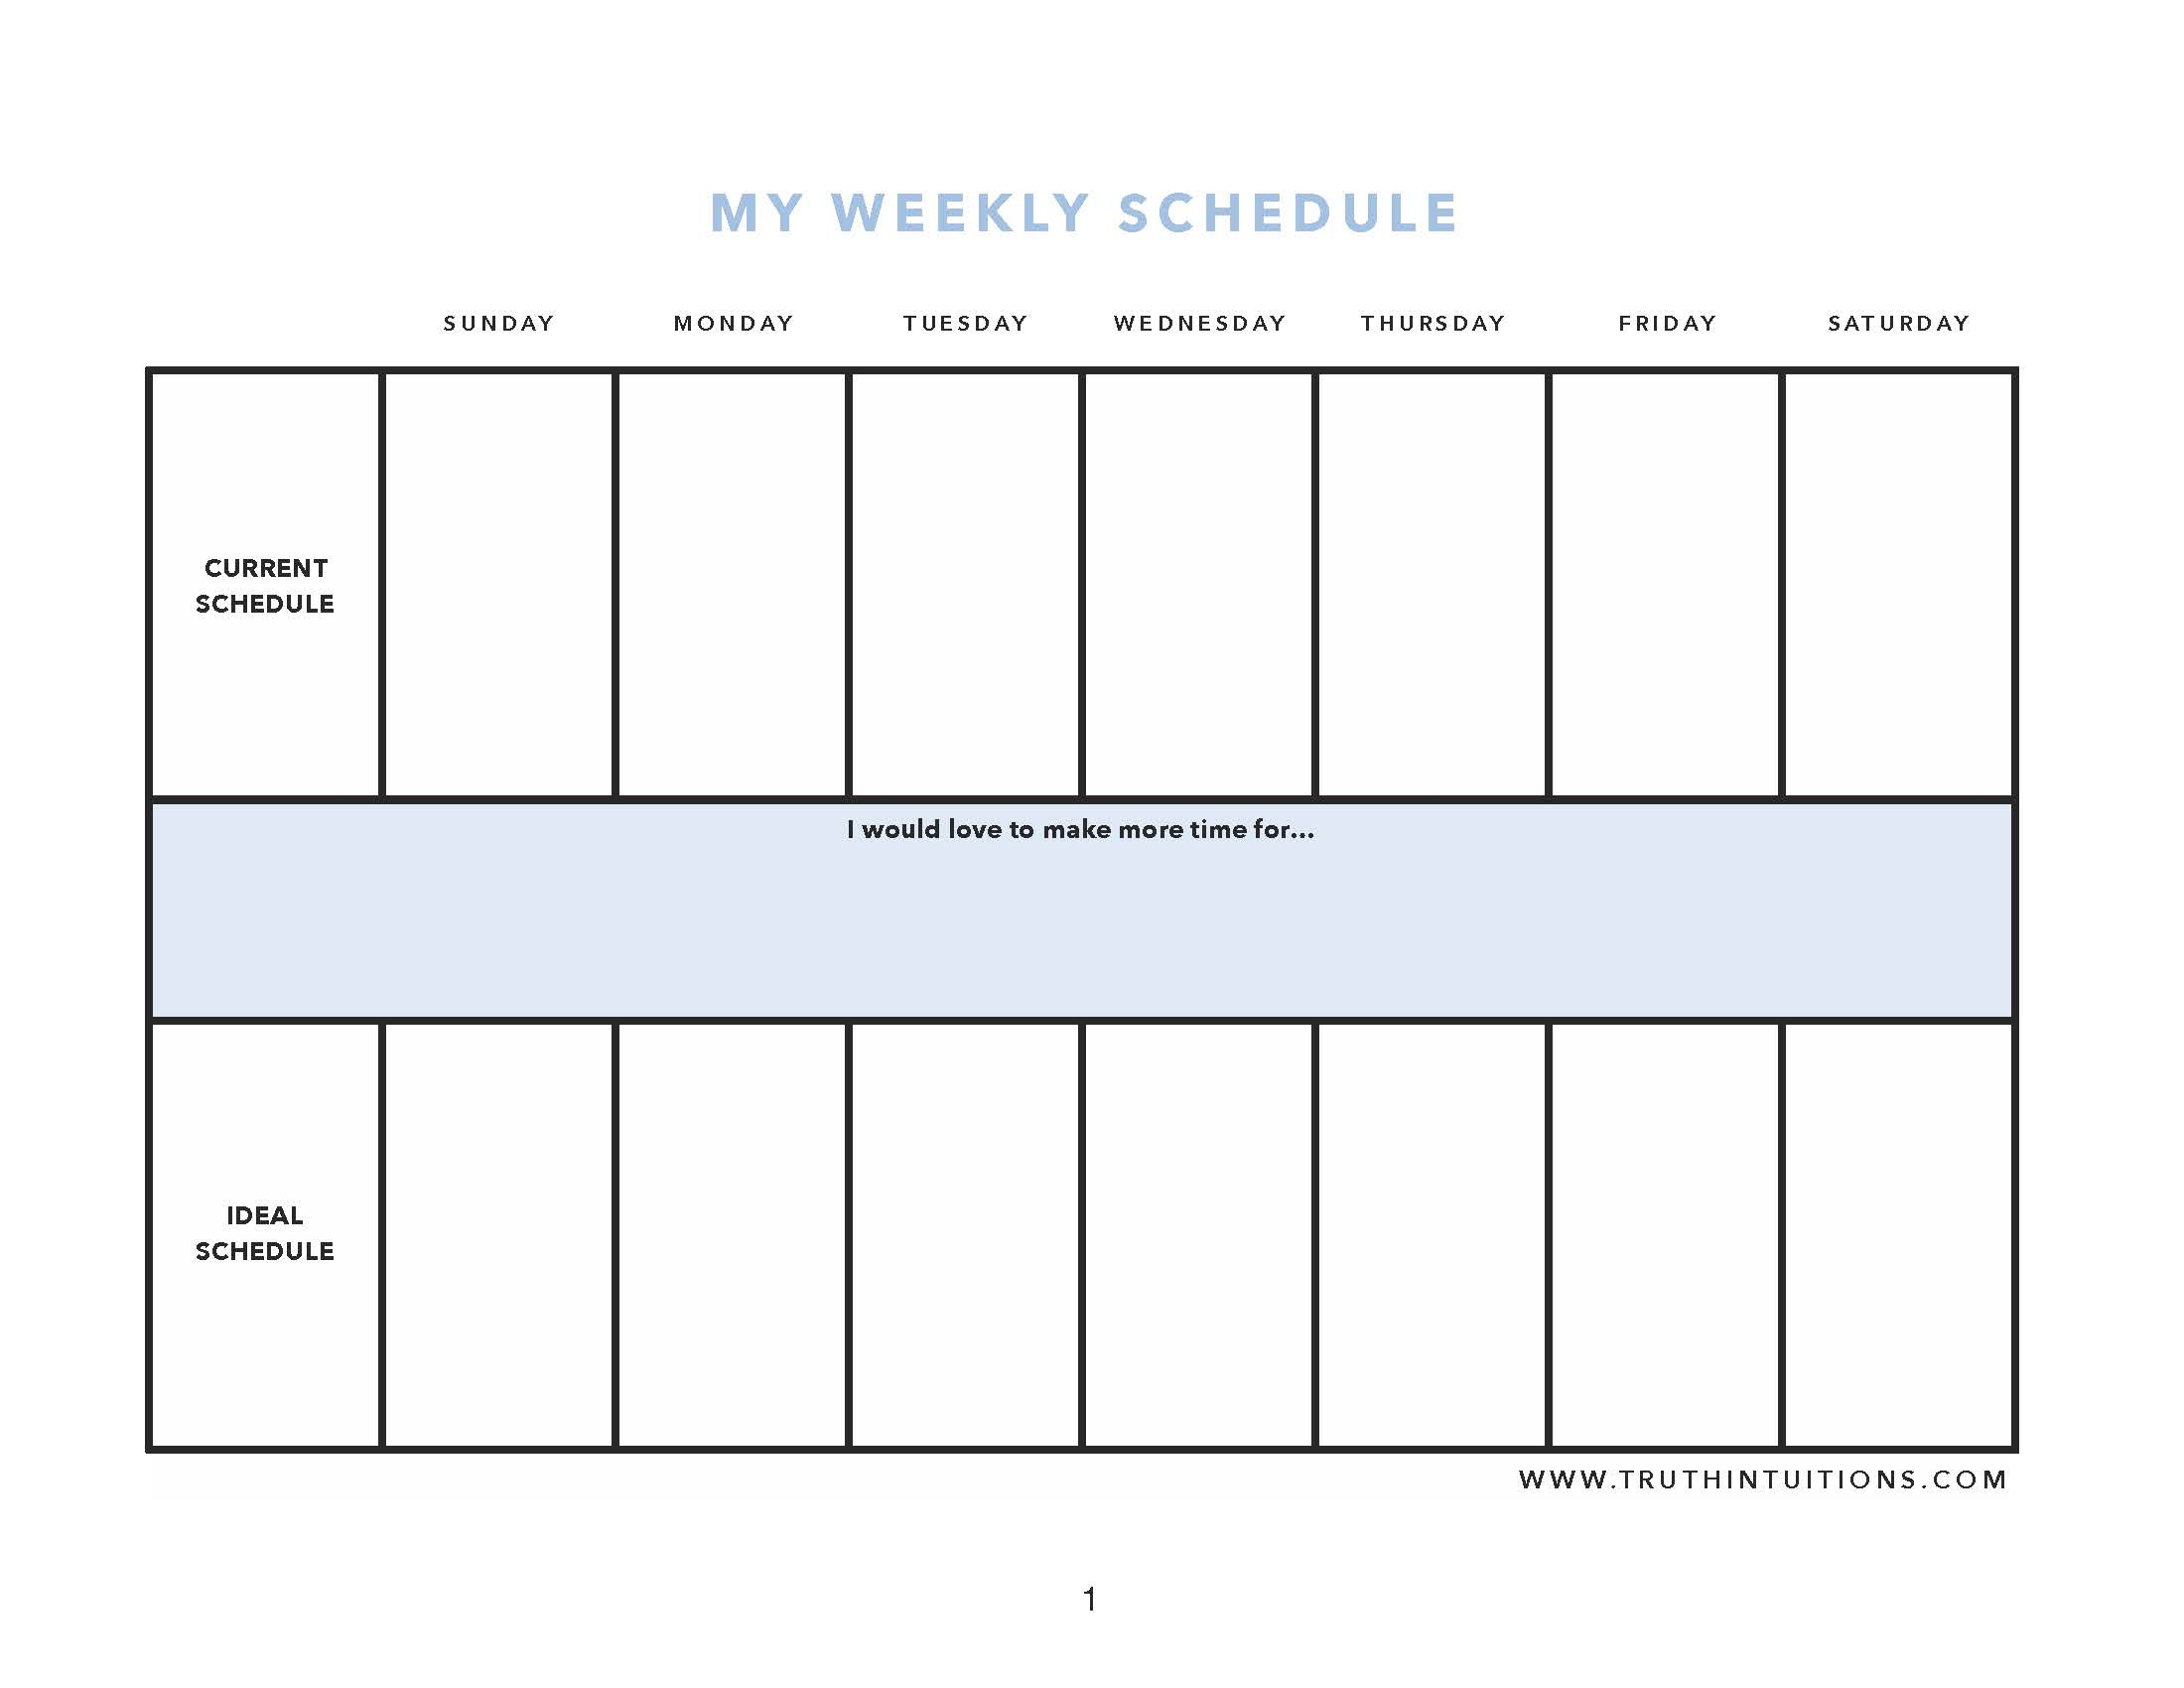 Truth Intuitions - Weekly Schedule Template.jpg